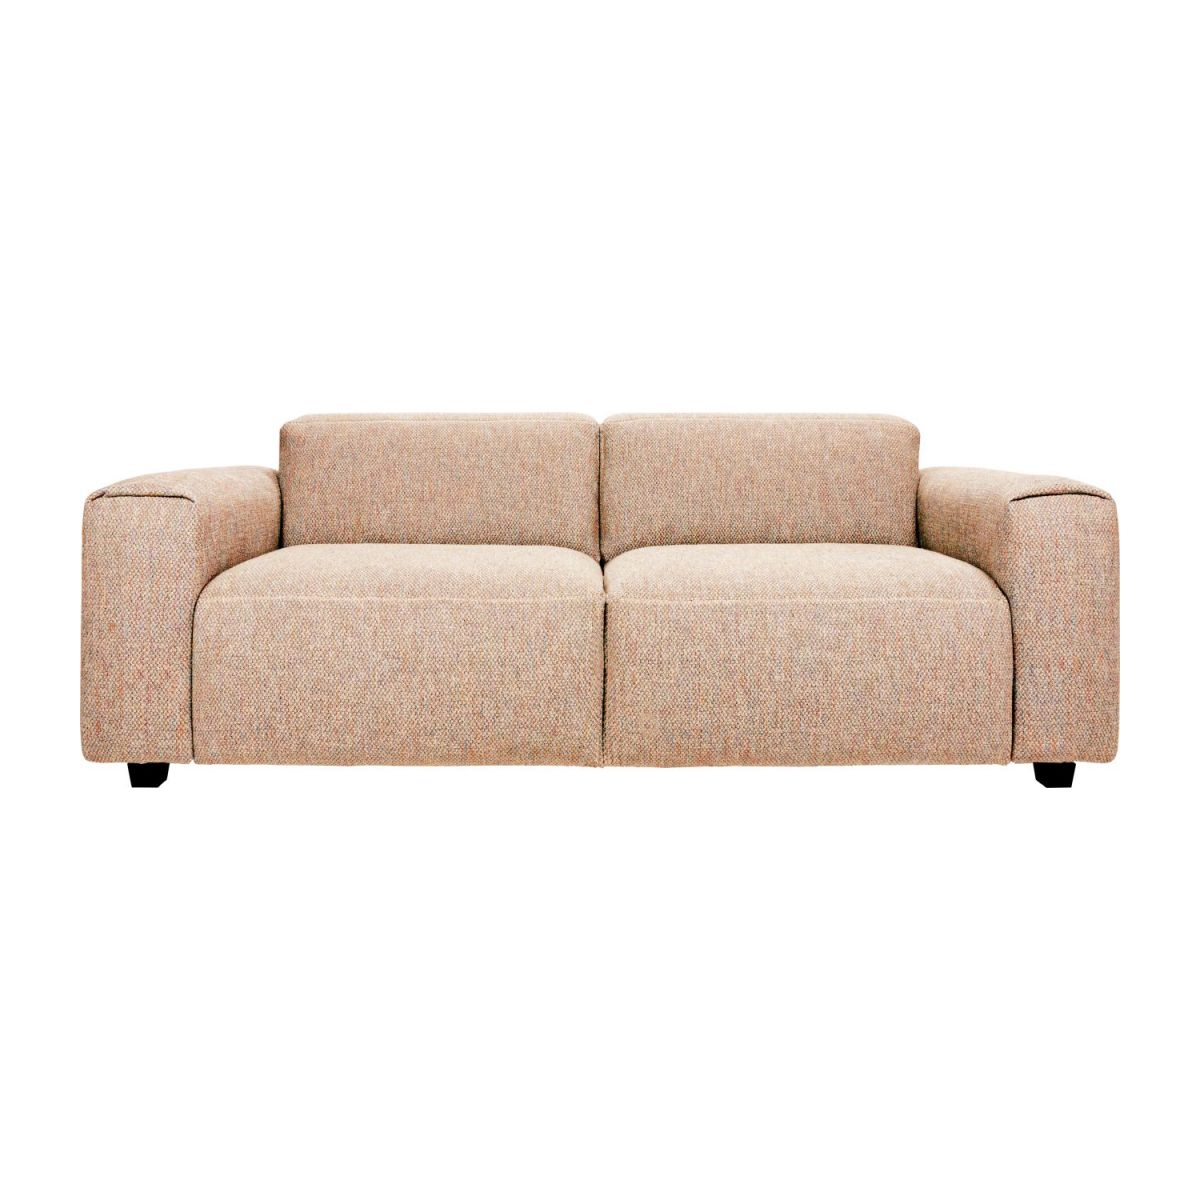 2-seater sofa in Bellagio fabric, passion orange n°3